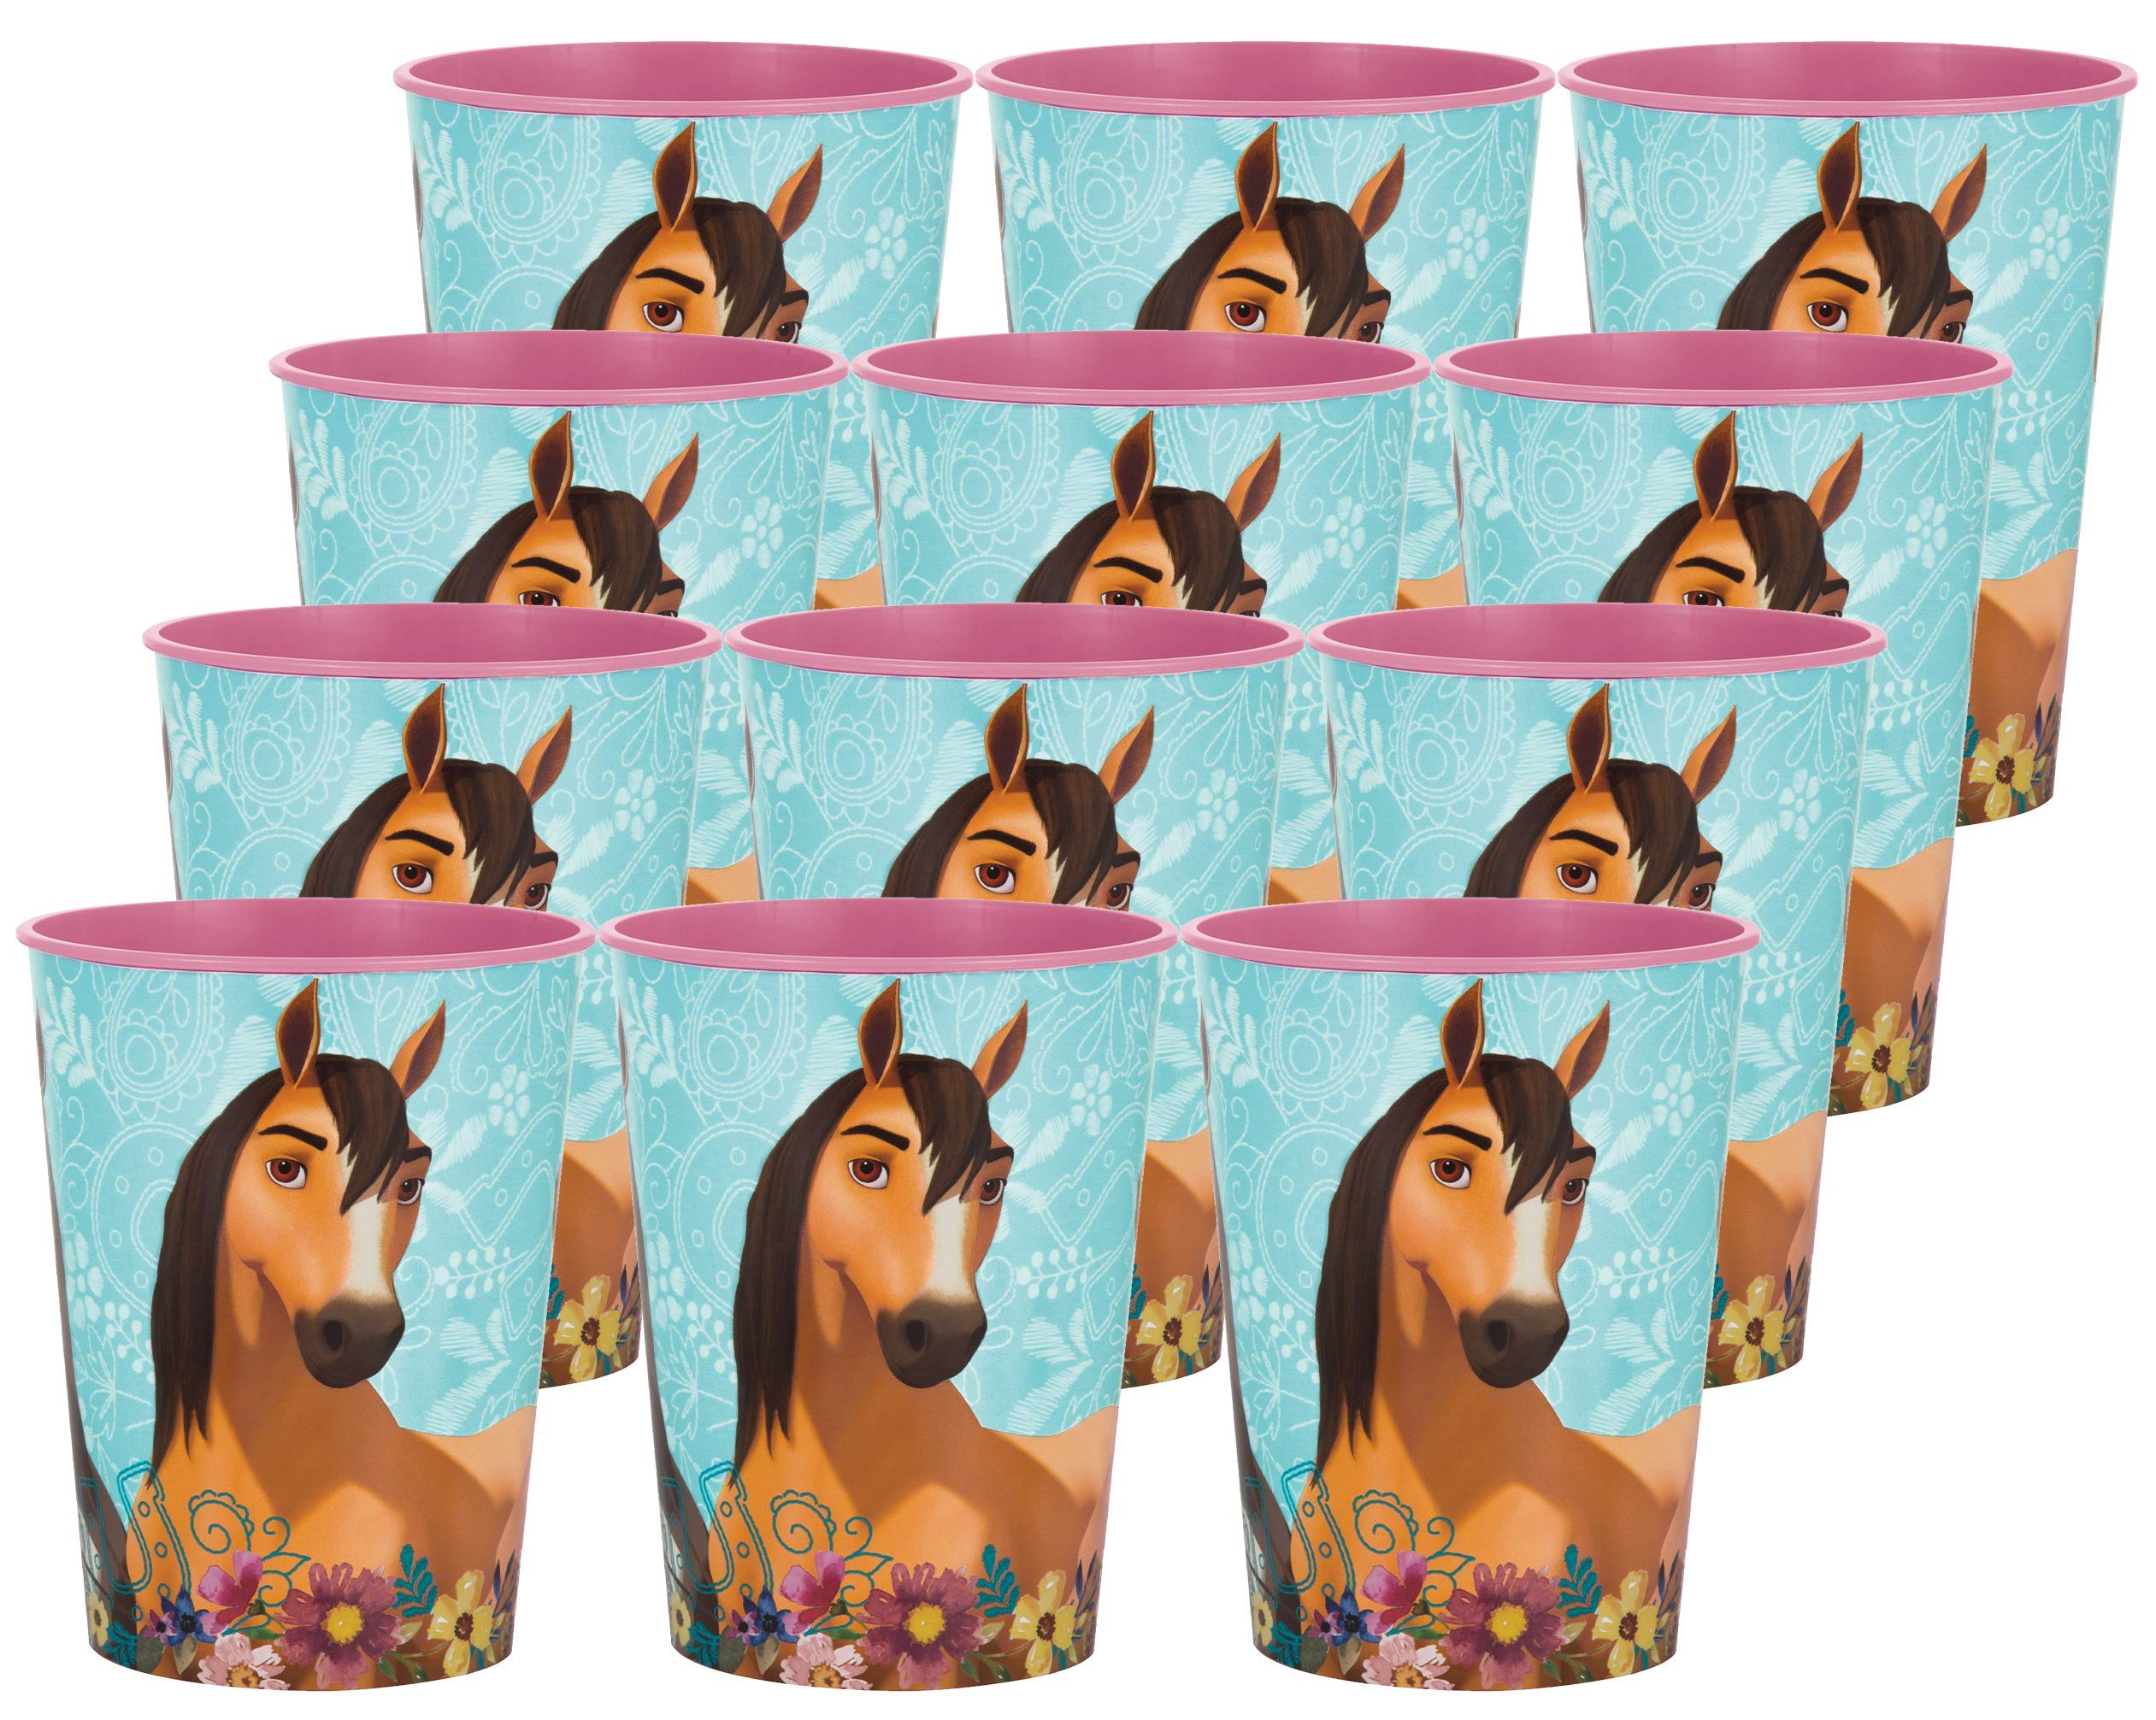 Spirit Riding Free Birthday Party Supplies Set of 12 16oz Plastic Reusable Favor Cups